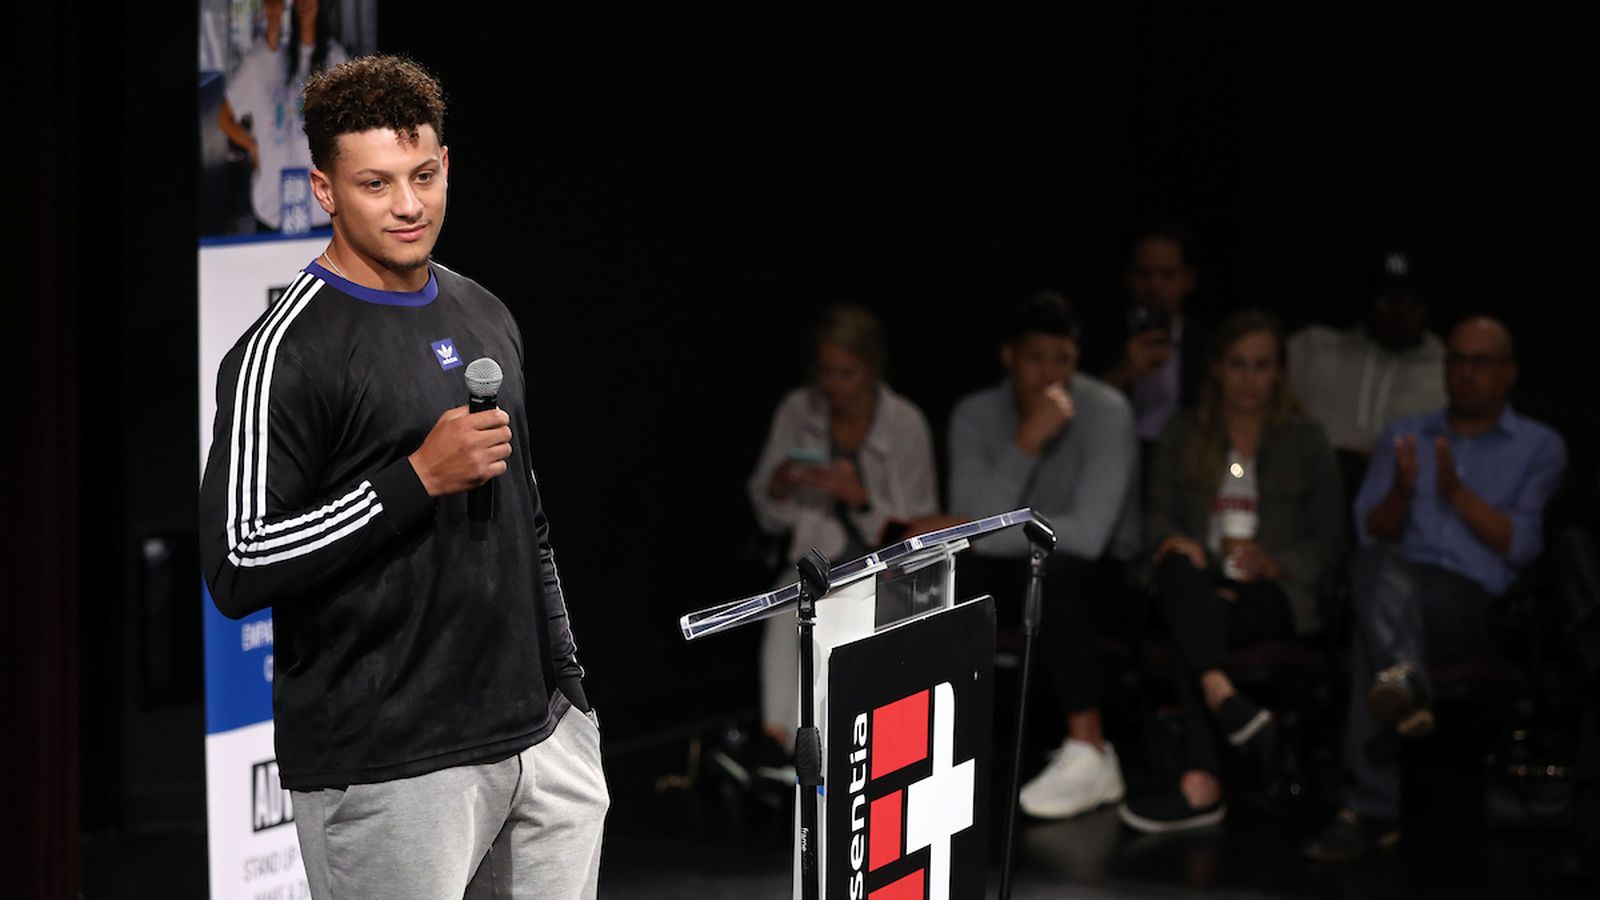 Photo Gallery: Patrick Mahomes speaks to kids in Los Angeles